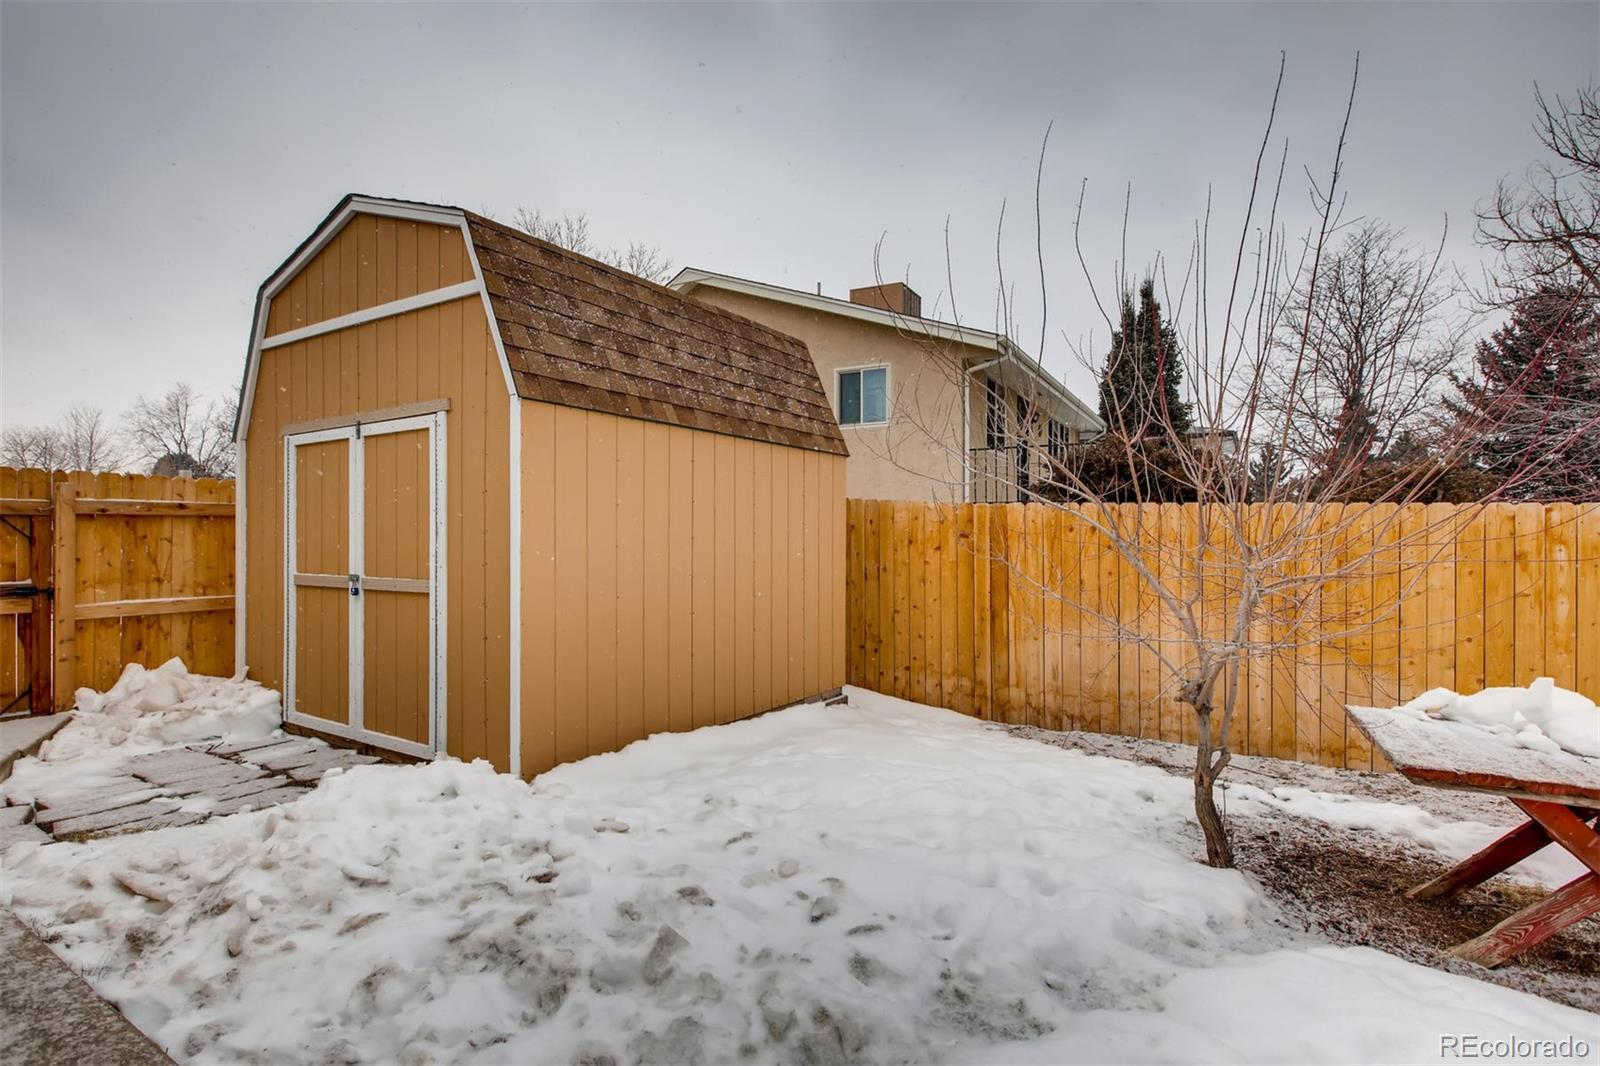 MLS# 2991178 - 26 - 8615 W 78th Place, Arvada, CO 80005